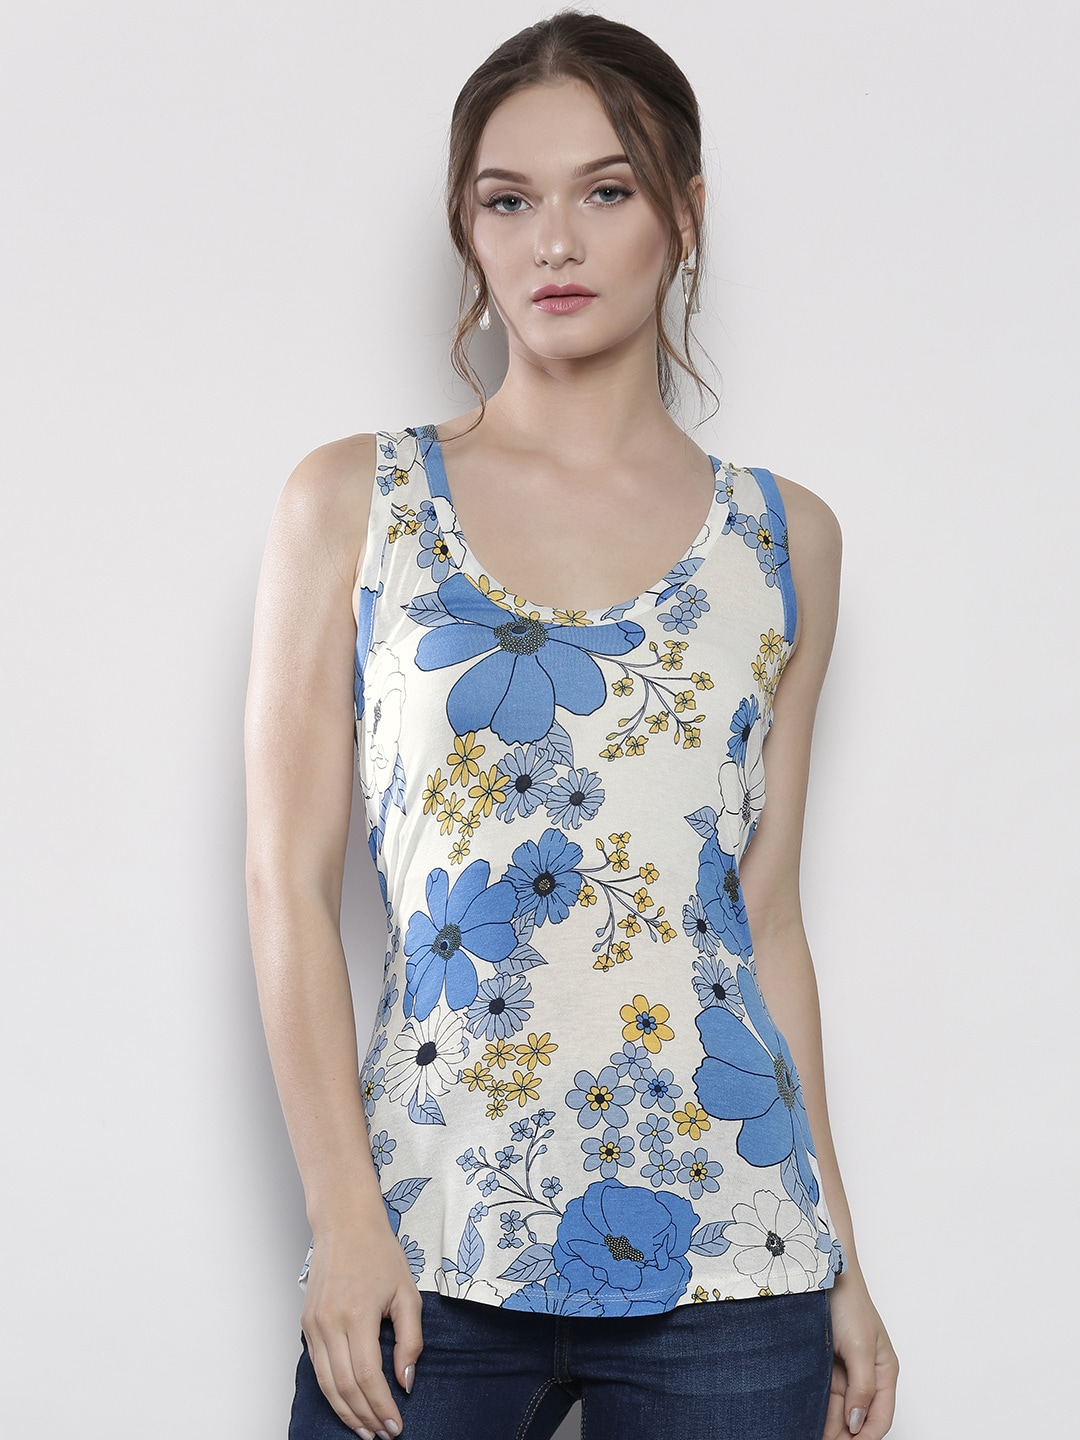 DOROTHY PERKINS Women White & Blue Printed Top image